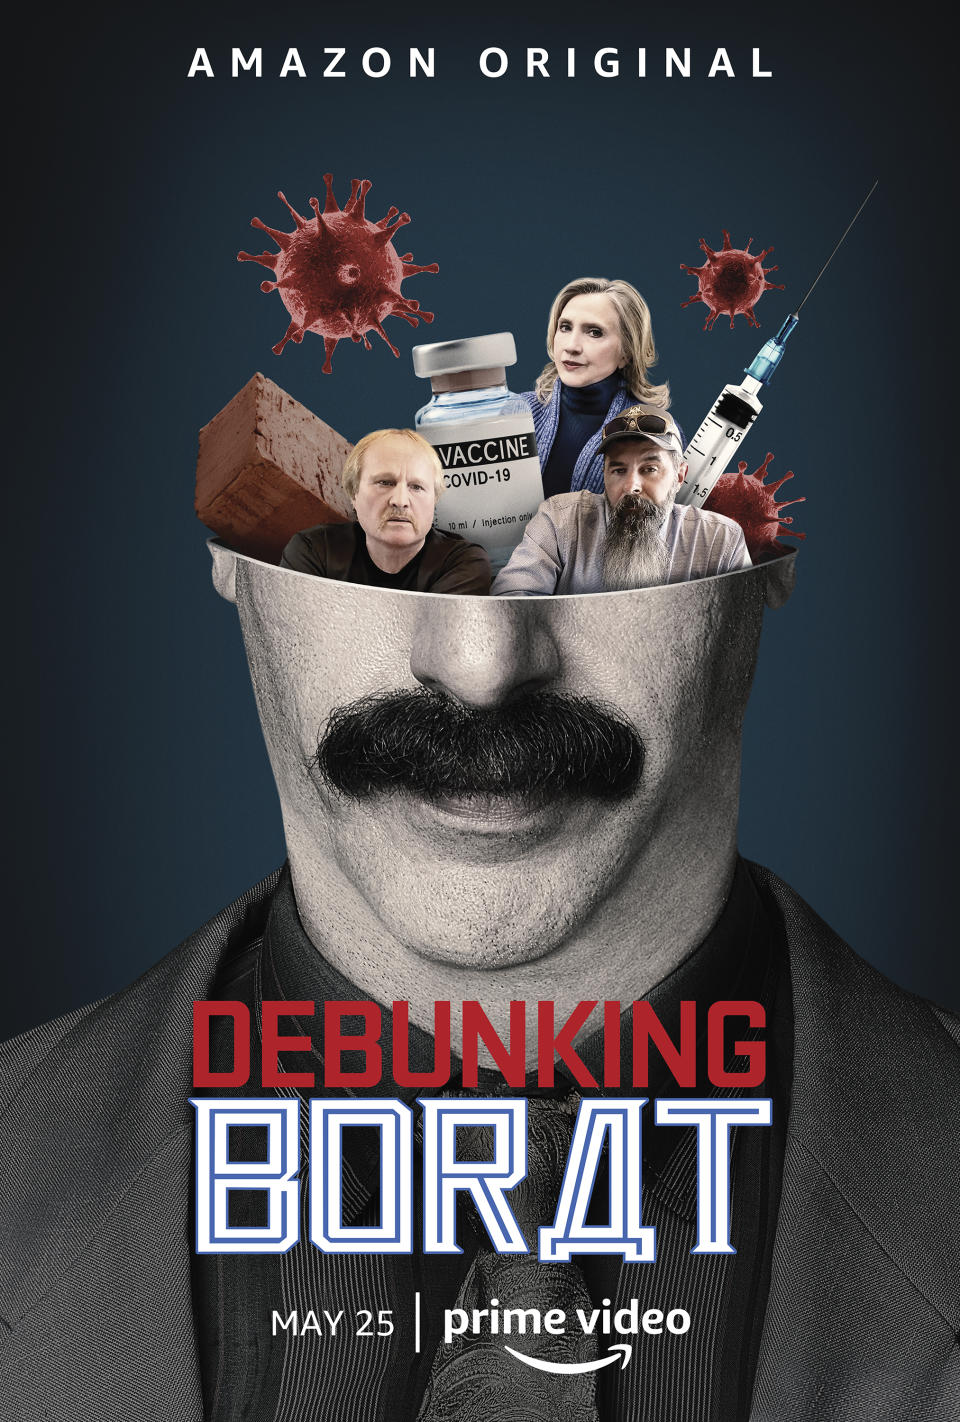 Debunking Borat (Documentary Short Specials) - In six documentary shorts, watch Borat's two roommates have their theories debunked by some of the world's leading experts. (Amazon)